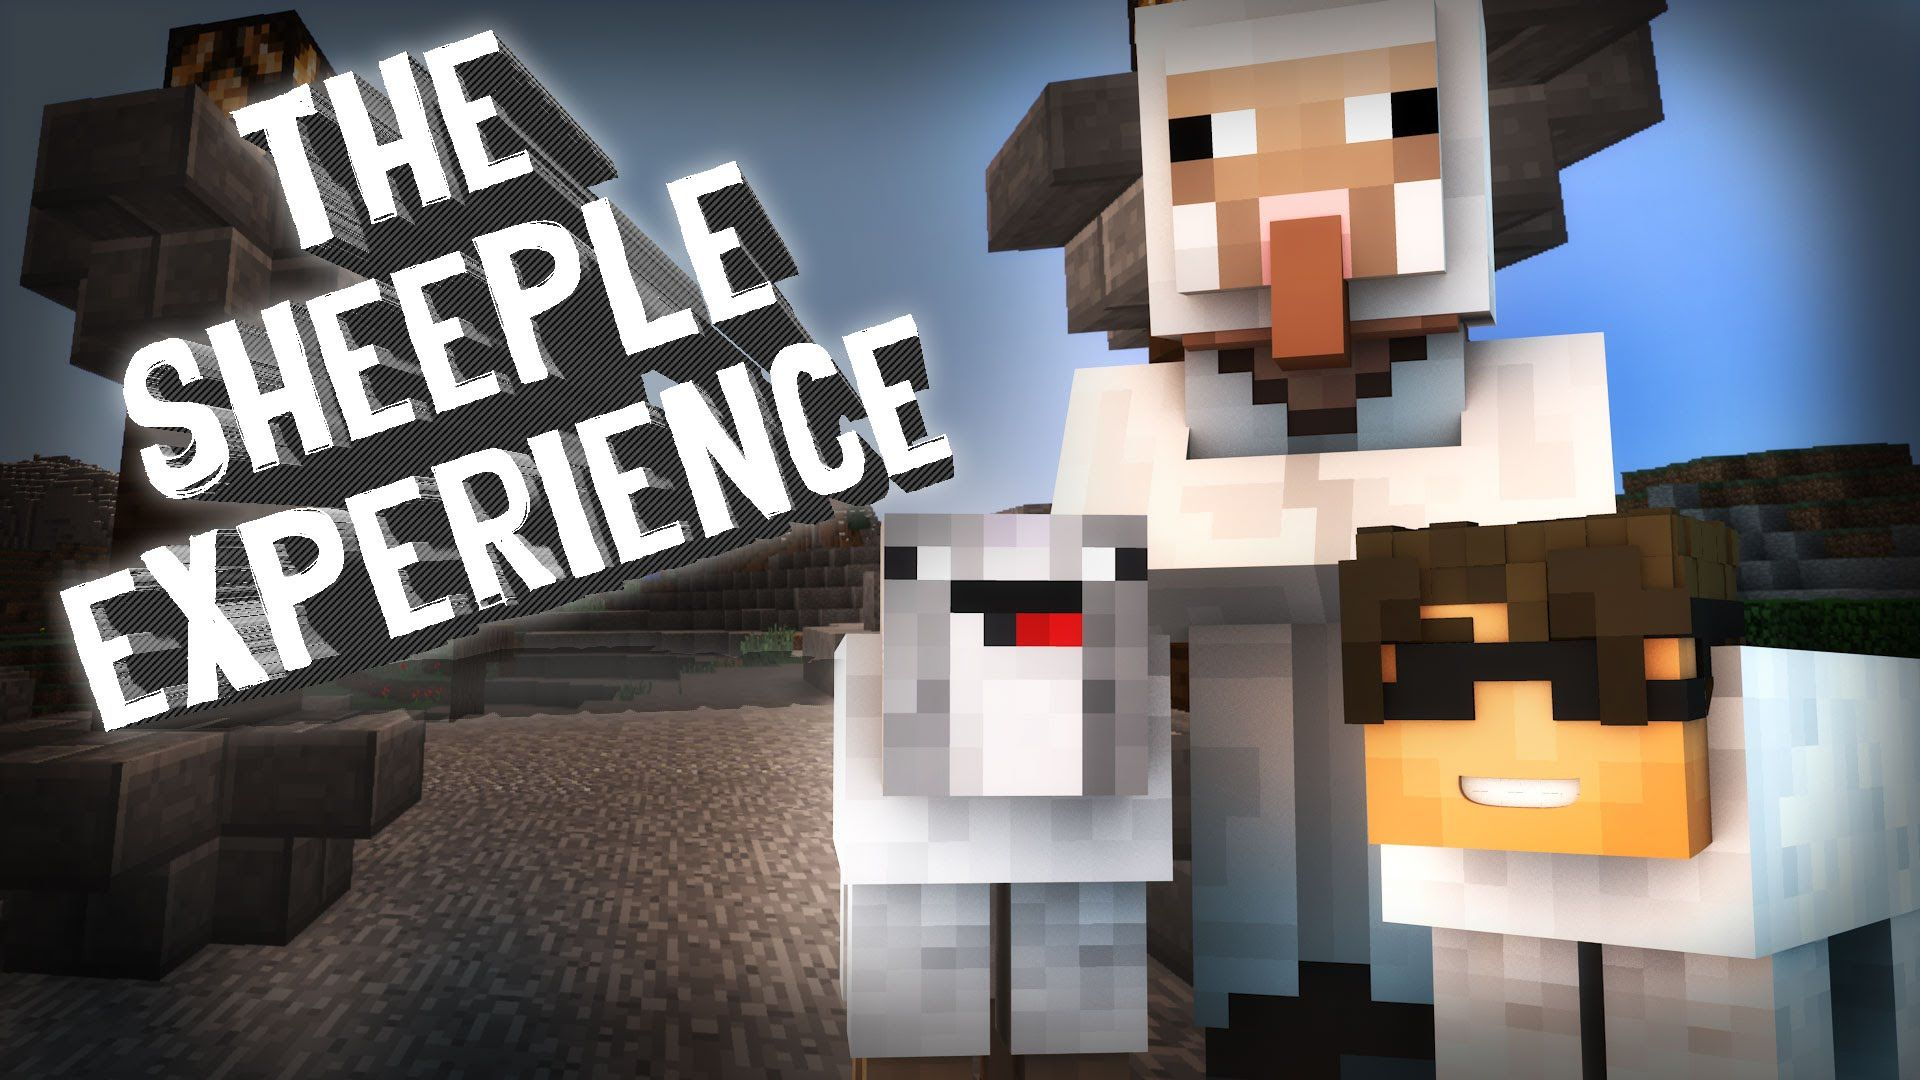 Minecraft Custom Adventure Map : THE SHEEPLE EXPERIENCE! /w Facecam on minecraft let's play youtube, minecraft parkour maps youtube, minecraft squid with stampy adventure map, minecraft pyramid adventure texture pack, minecraft penguin youtube, minecraft hunger games youtube, minecraft adventure mod, minecraft skyrim adventure map, minecraft xbox 360 maps youtube, minecraft egypt adventure map, minecraft horror maps youtube,